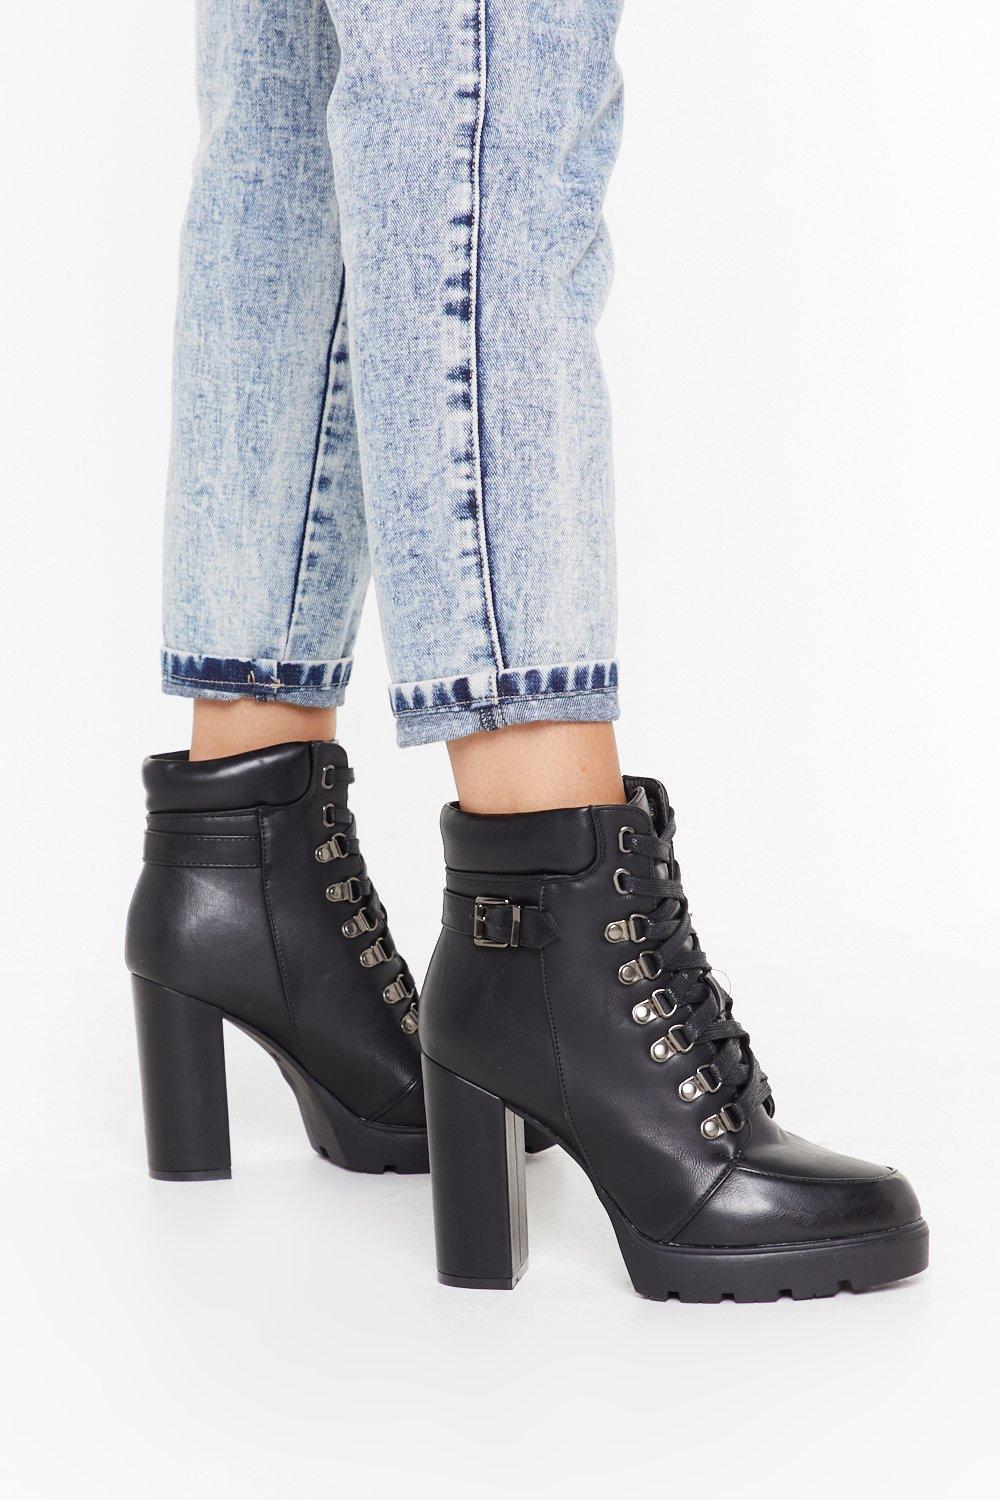 Image of Heeled faux leather d ring hiker boots